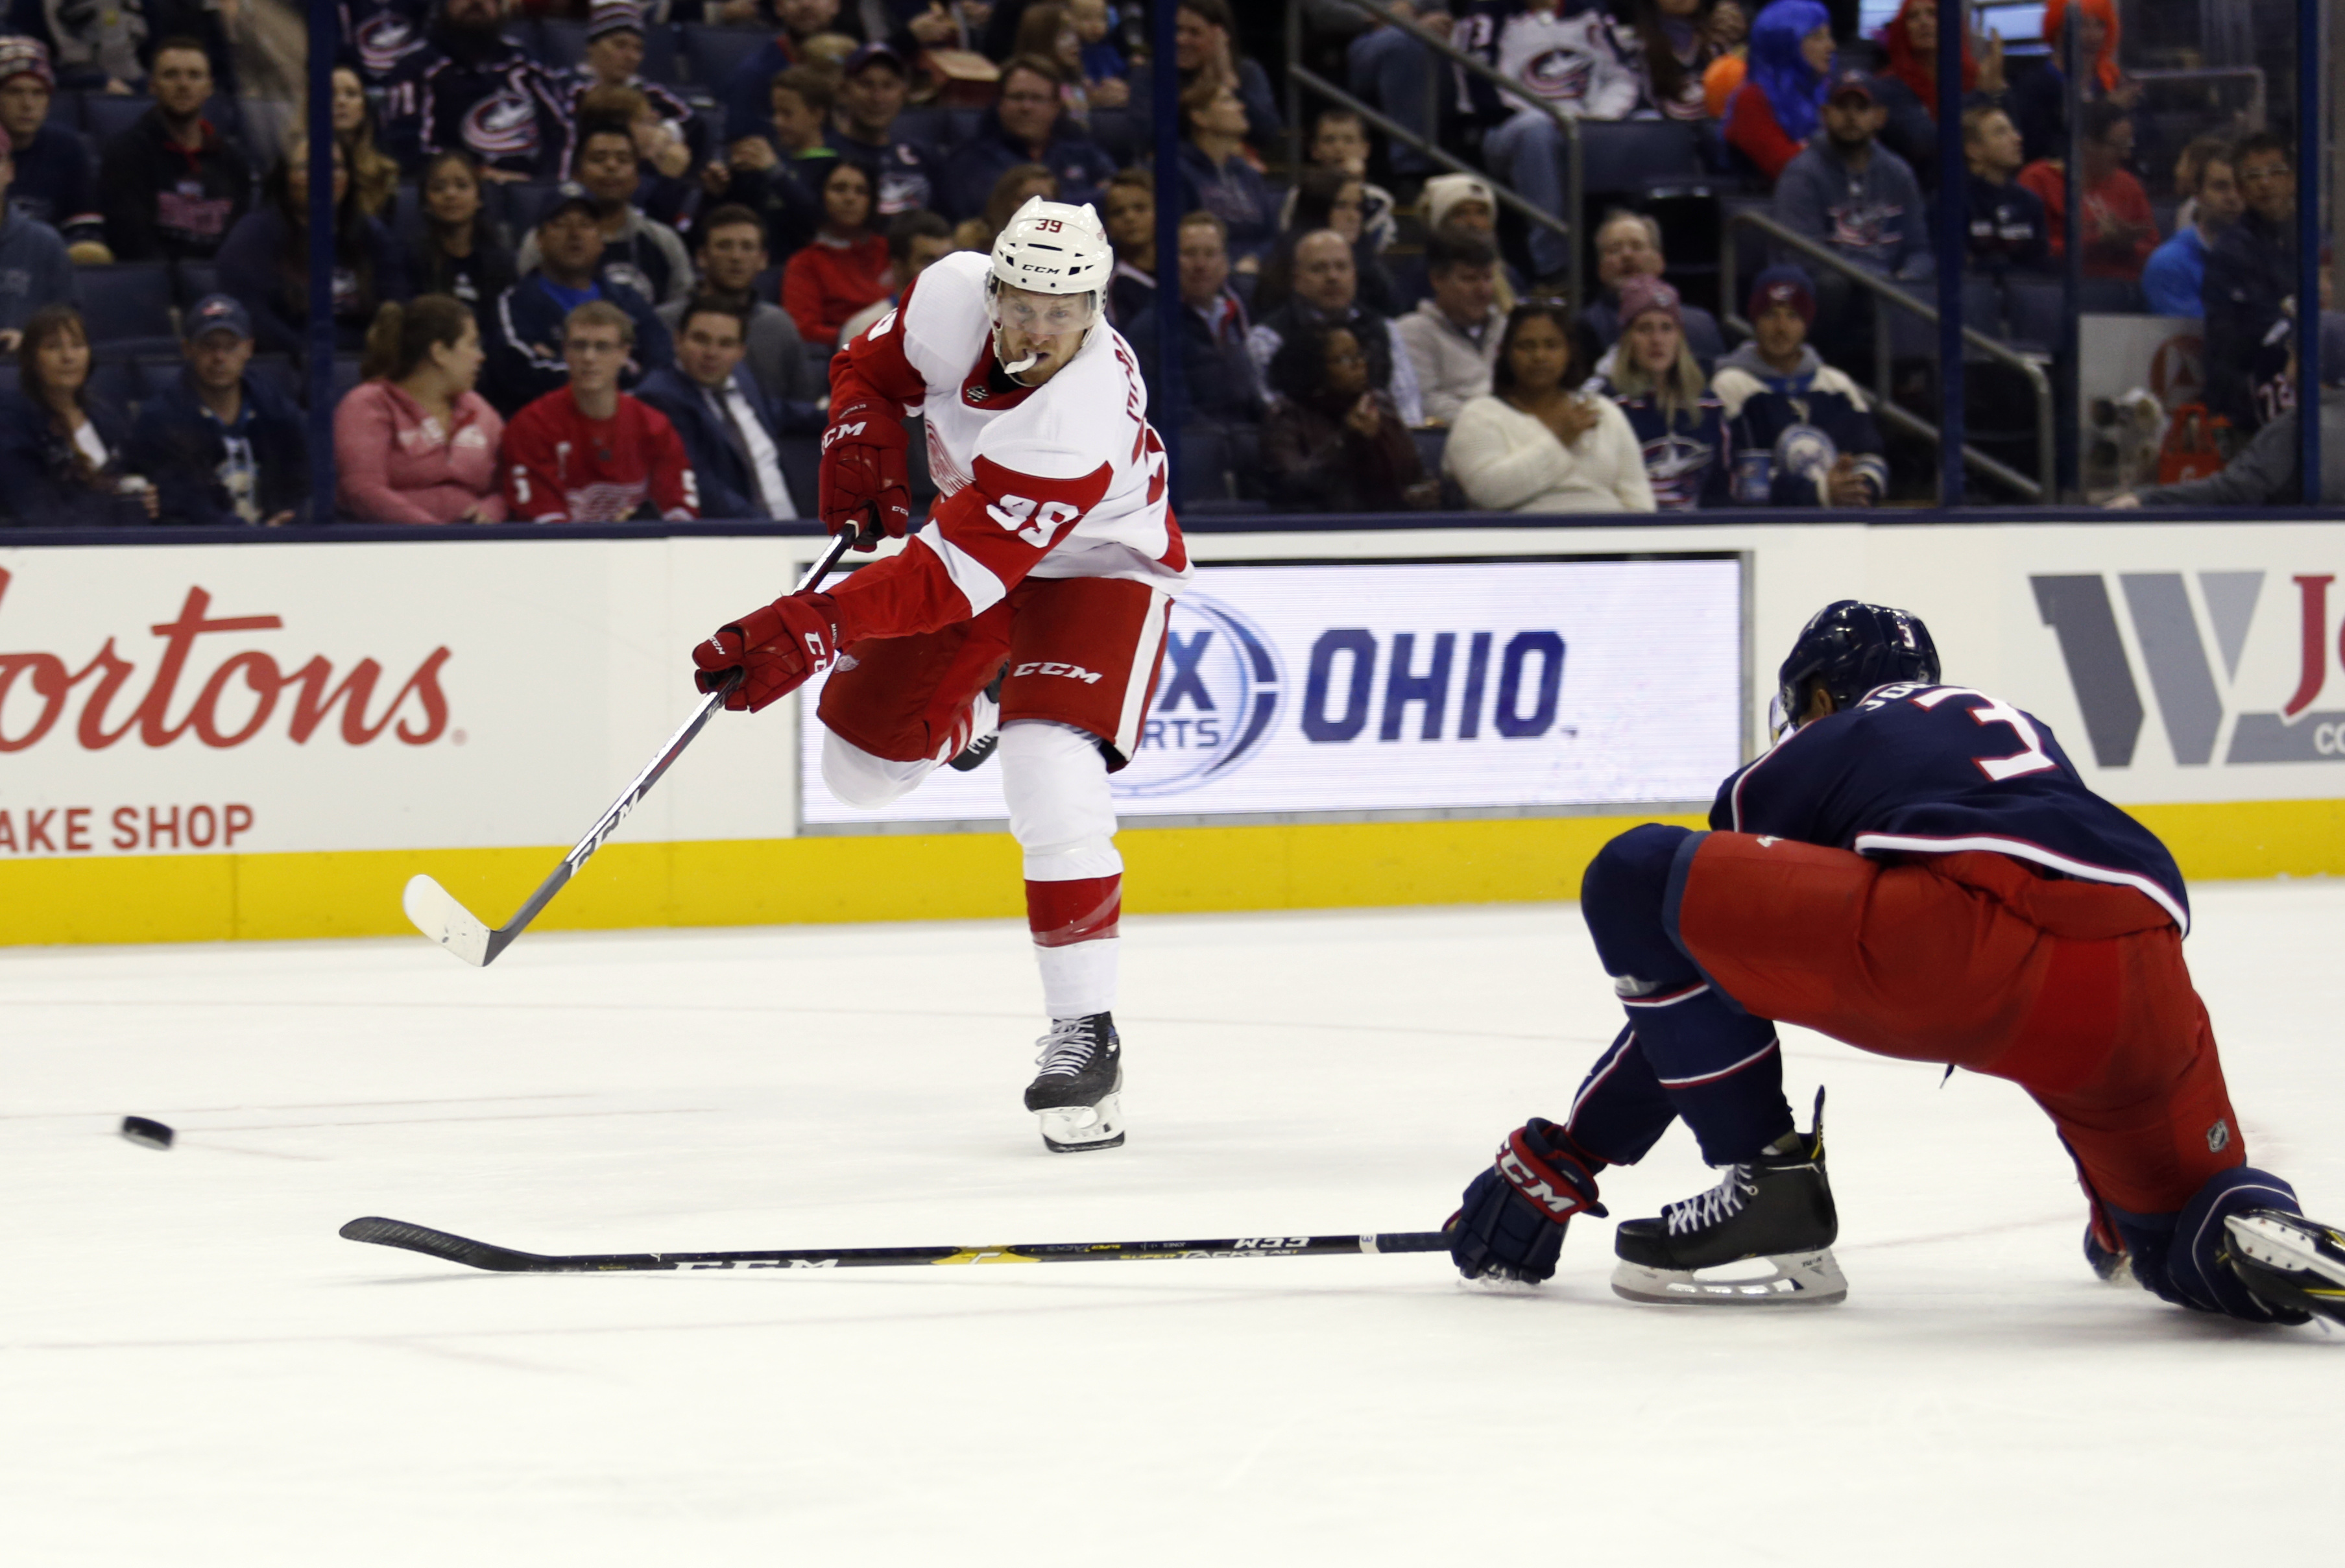 Bertuzzi's late goal powers Red Wings over Blue Jackets 5-3